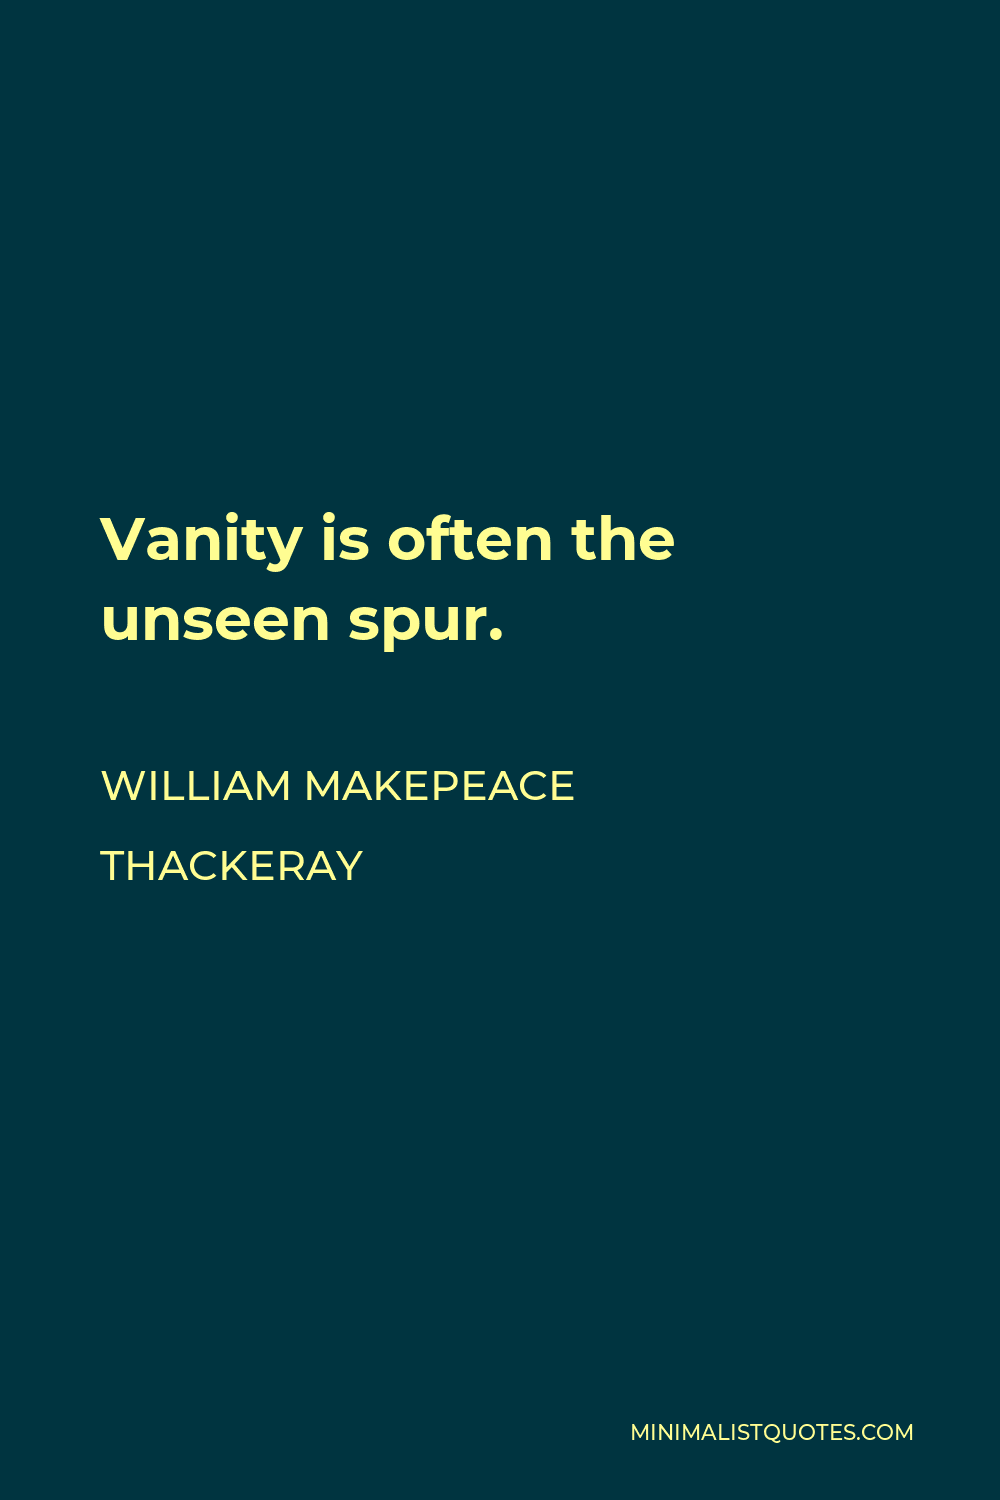 William Makepeace Thackeray Quote - Vanity is often the unseen spur.